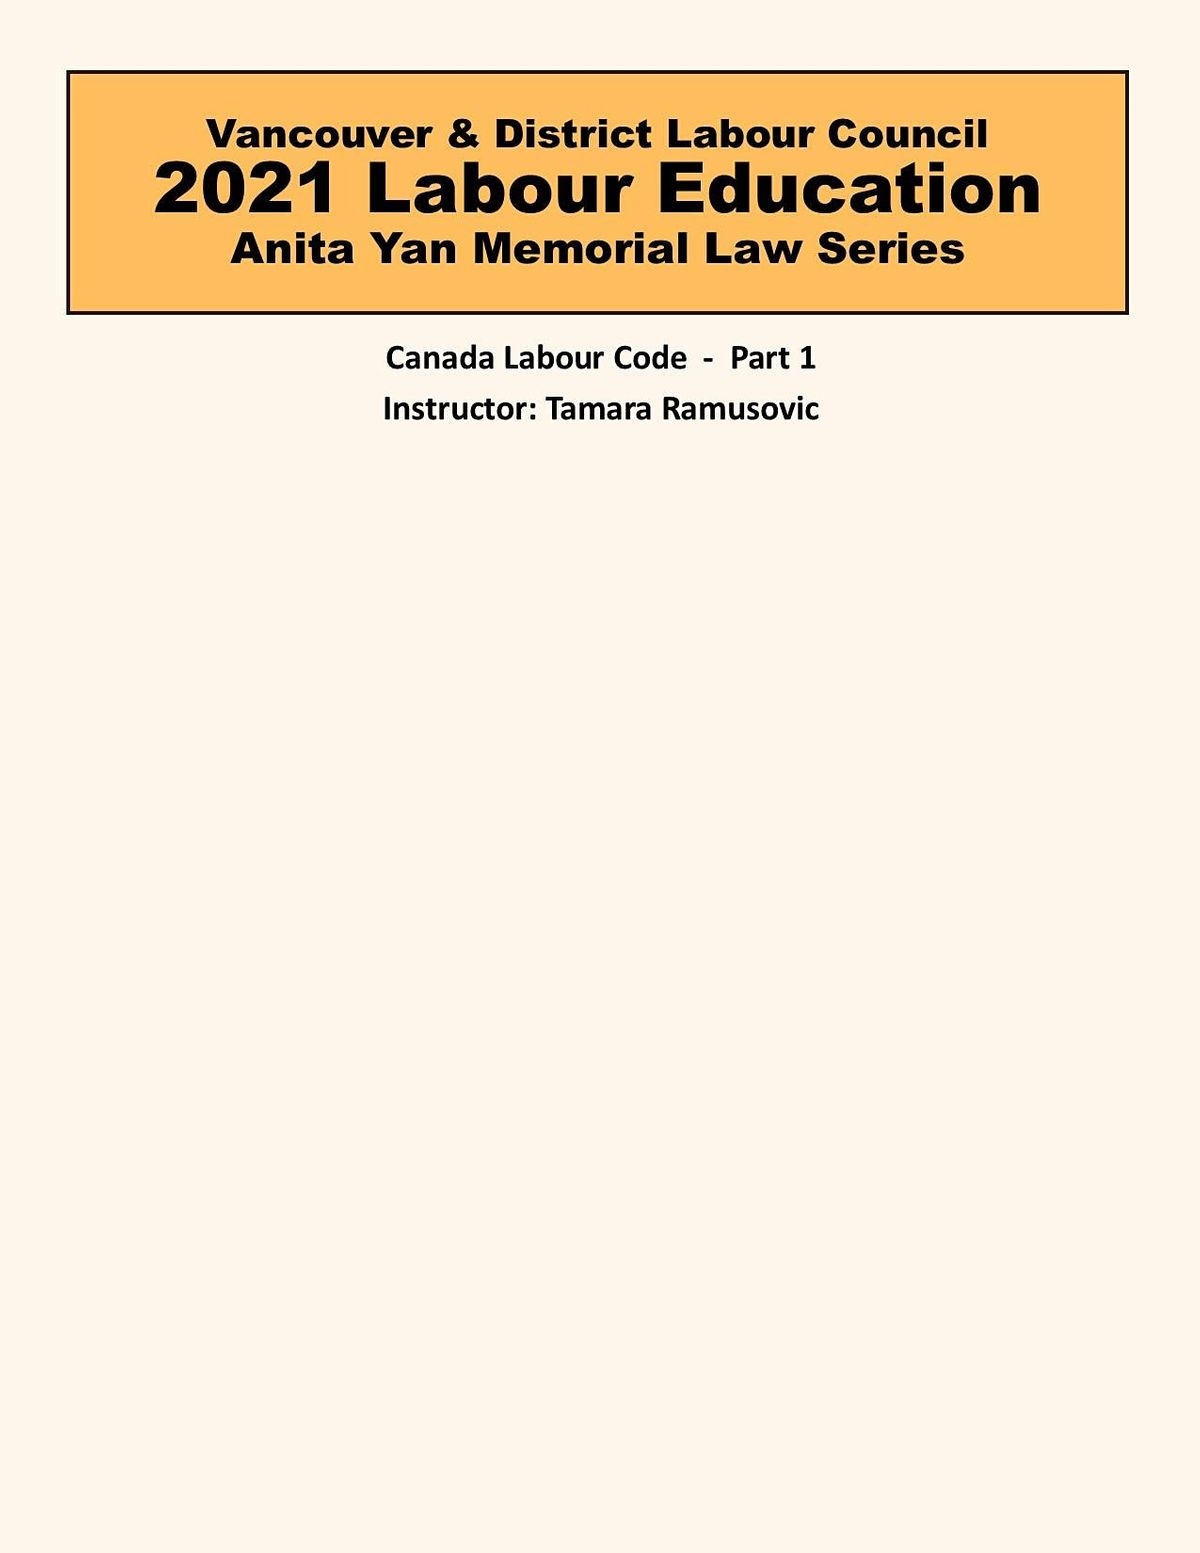 Canada Labour Code - Part 1, 10 May | Event in Vancouver | AllEvents.in